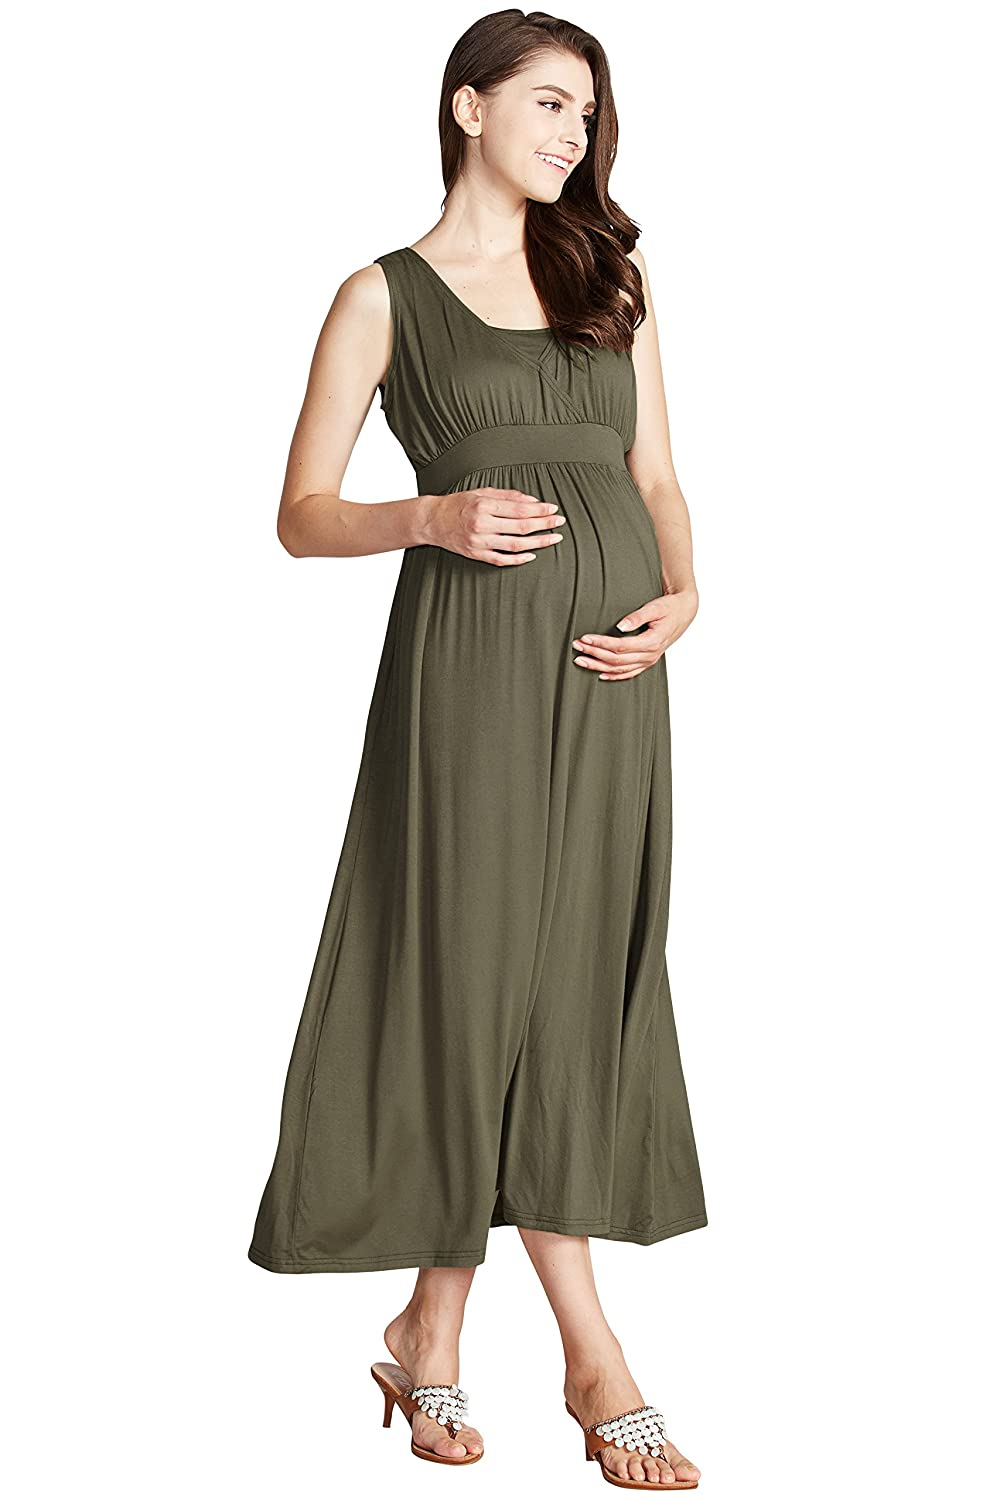 Sweet Mommy Maternity and Nursing Drape Maxi Dress Sweet Mommy Co. Ltd